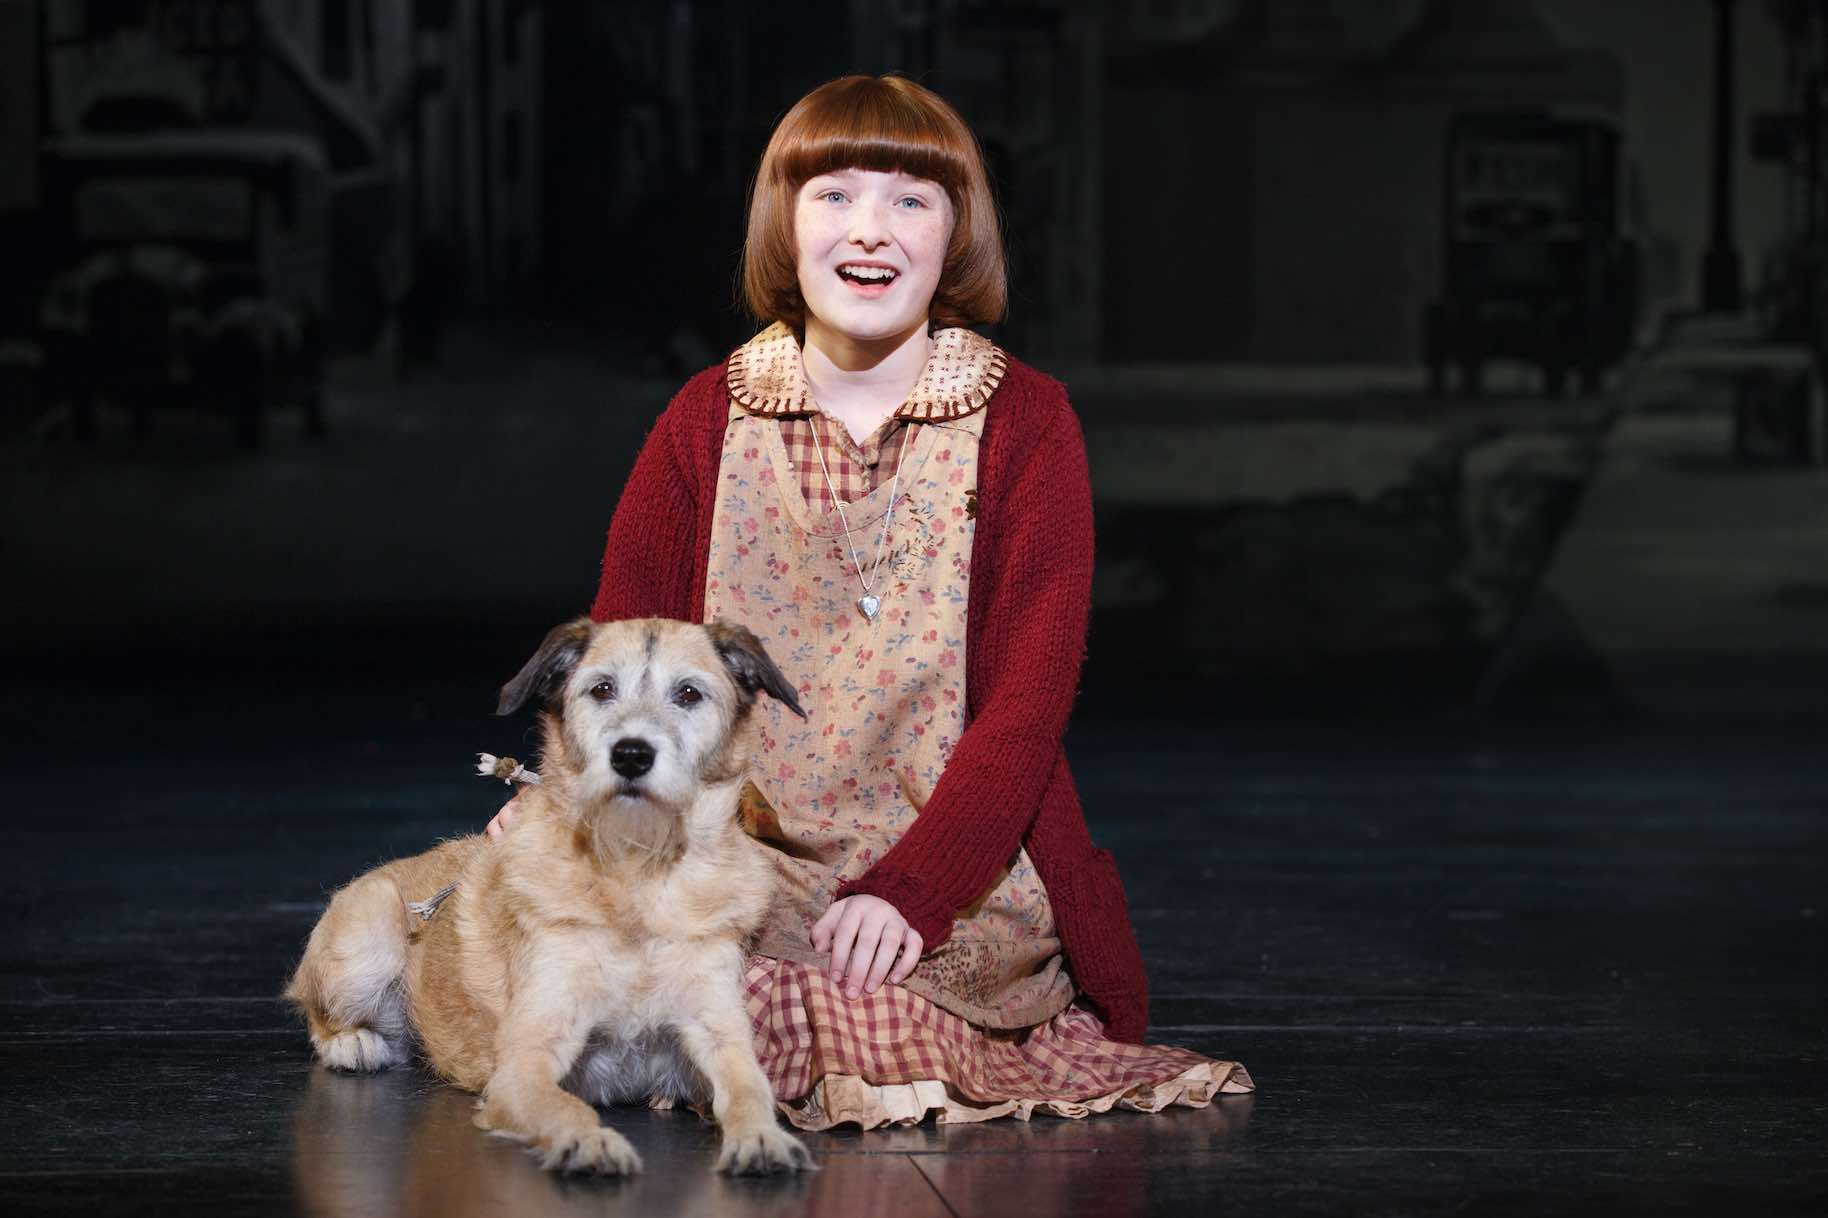 Annie Musical Singapore Dog Companion - AspirantSG